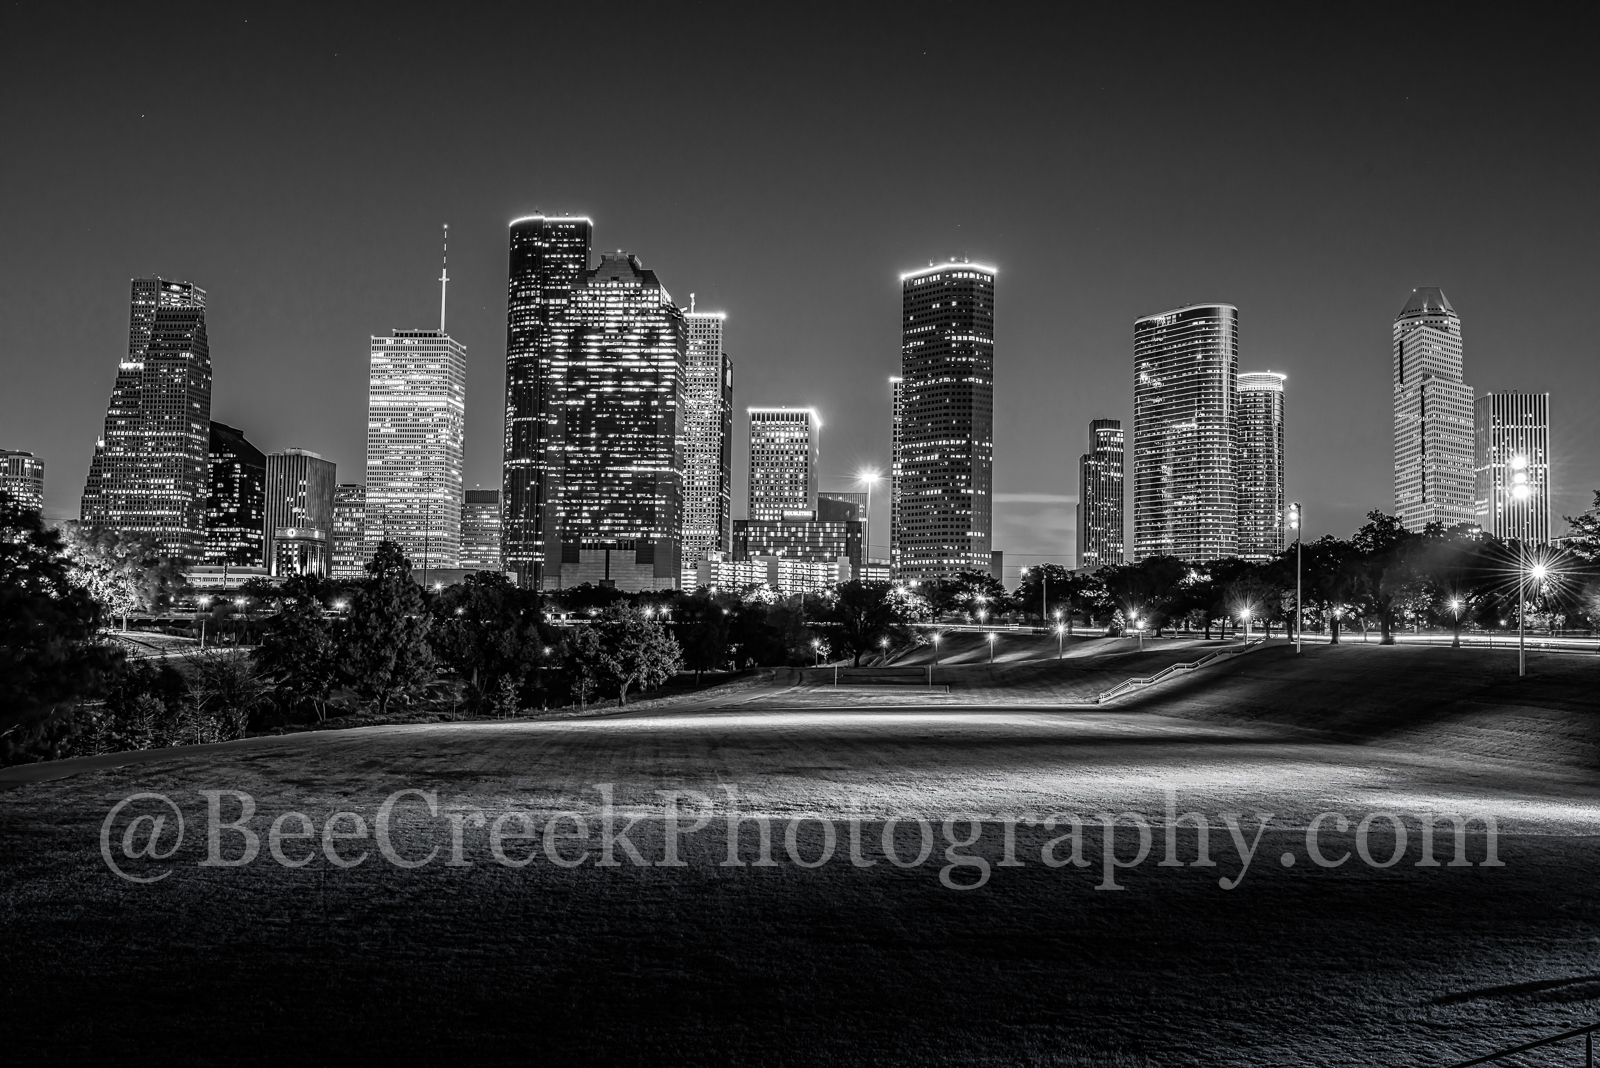 Houston, black and white, buffalo bayou, cities, city, cityscape, cityscapes, downtown, high rise, night, park, skyline, skylines, skyscrapers, street scene, tall buildings, photo